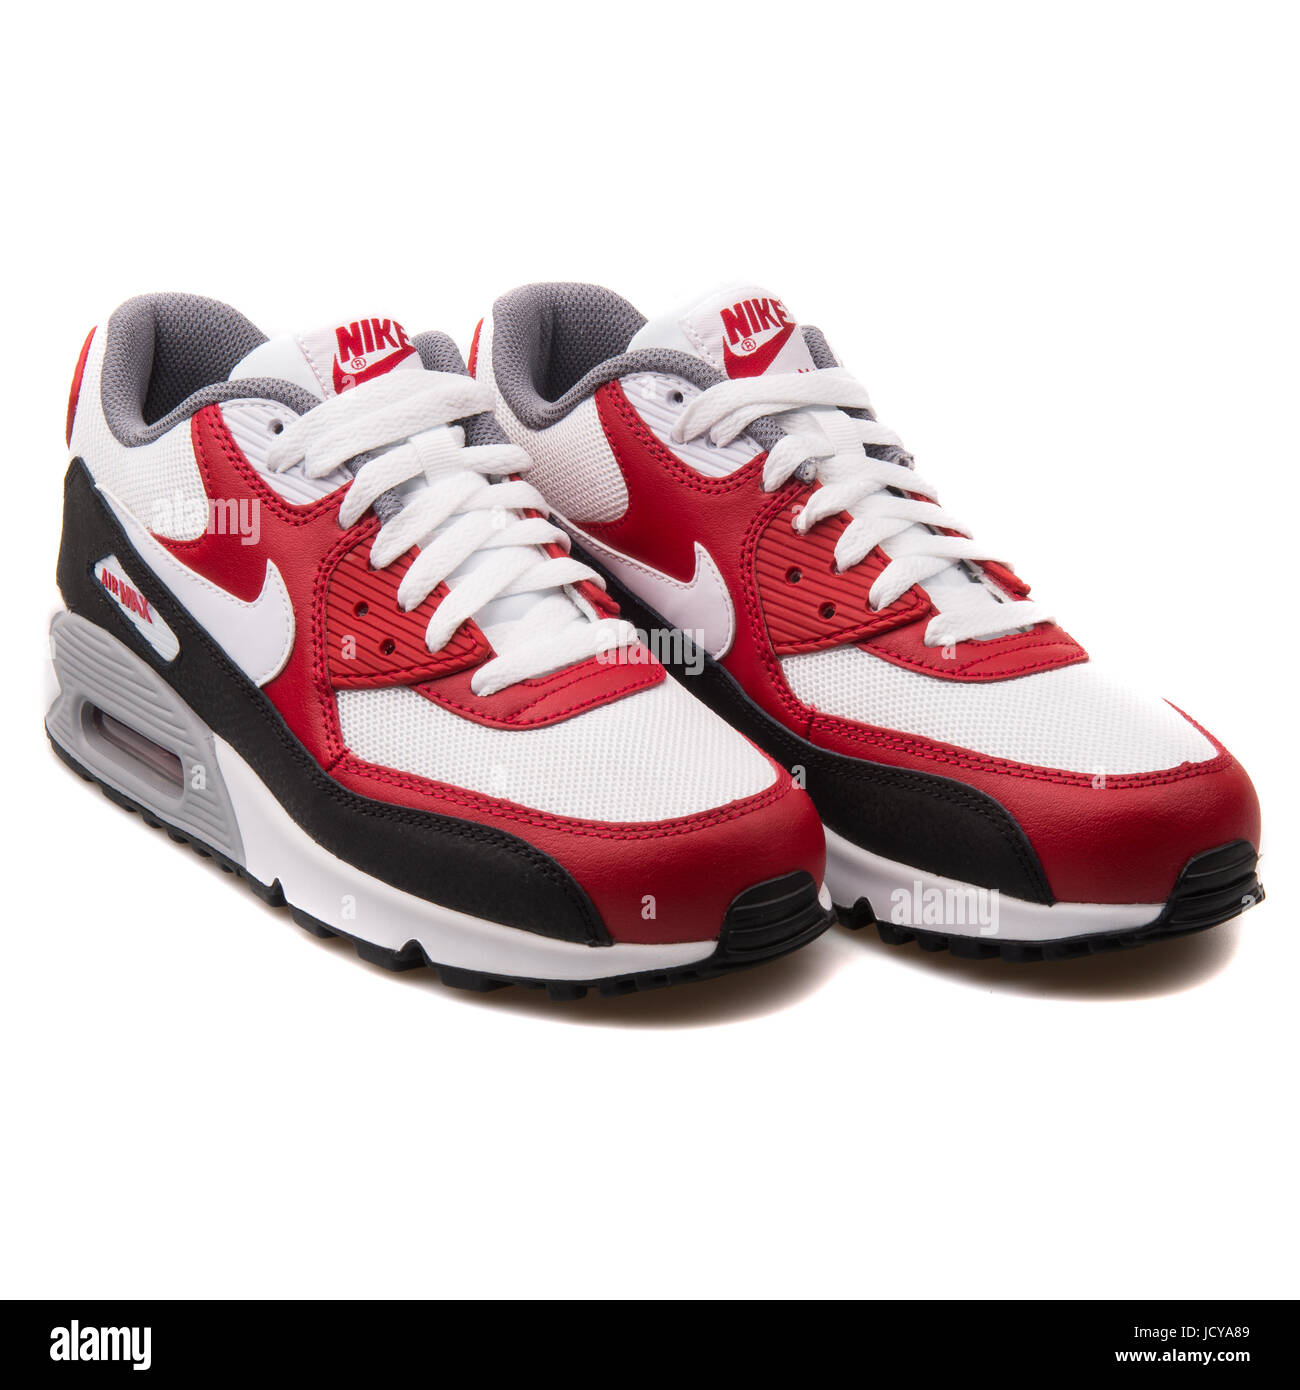 Nike Air Max 90 Mesh (GS) White, Red and Black Youth's